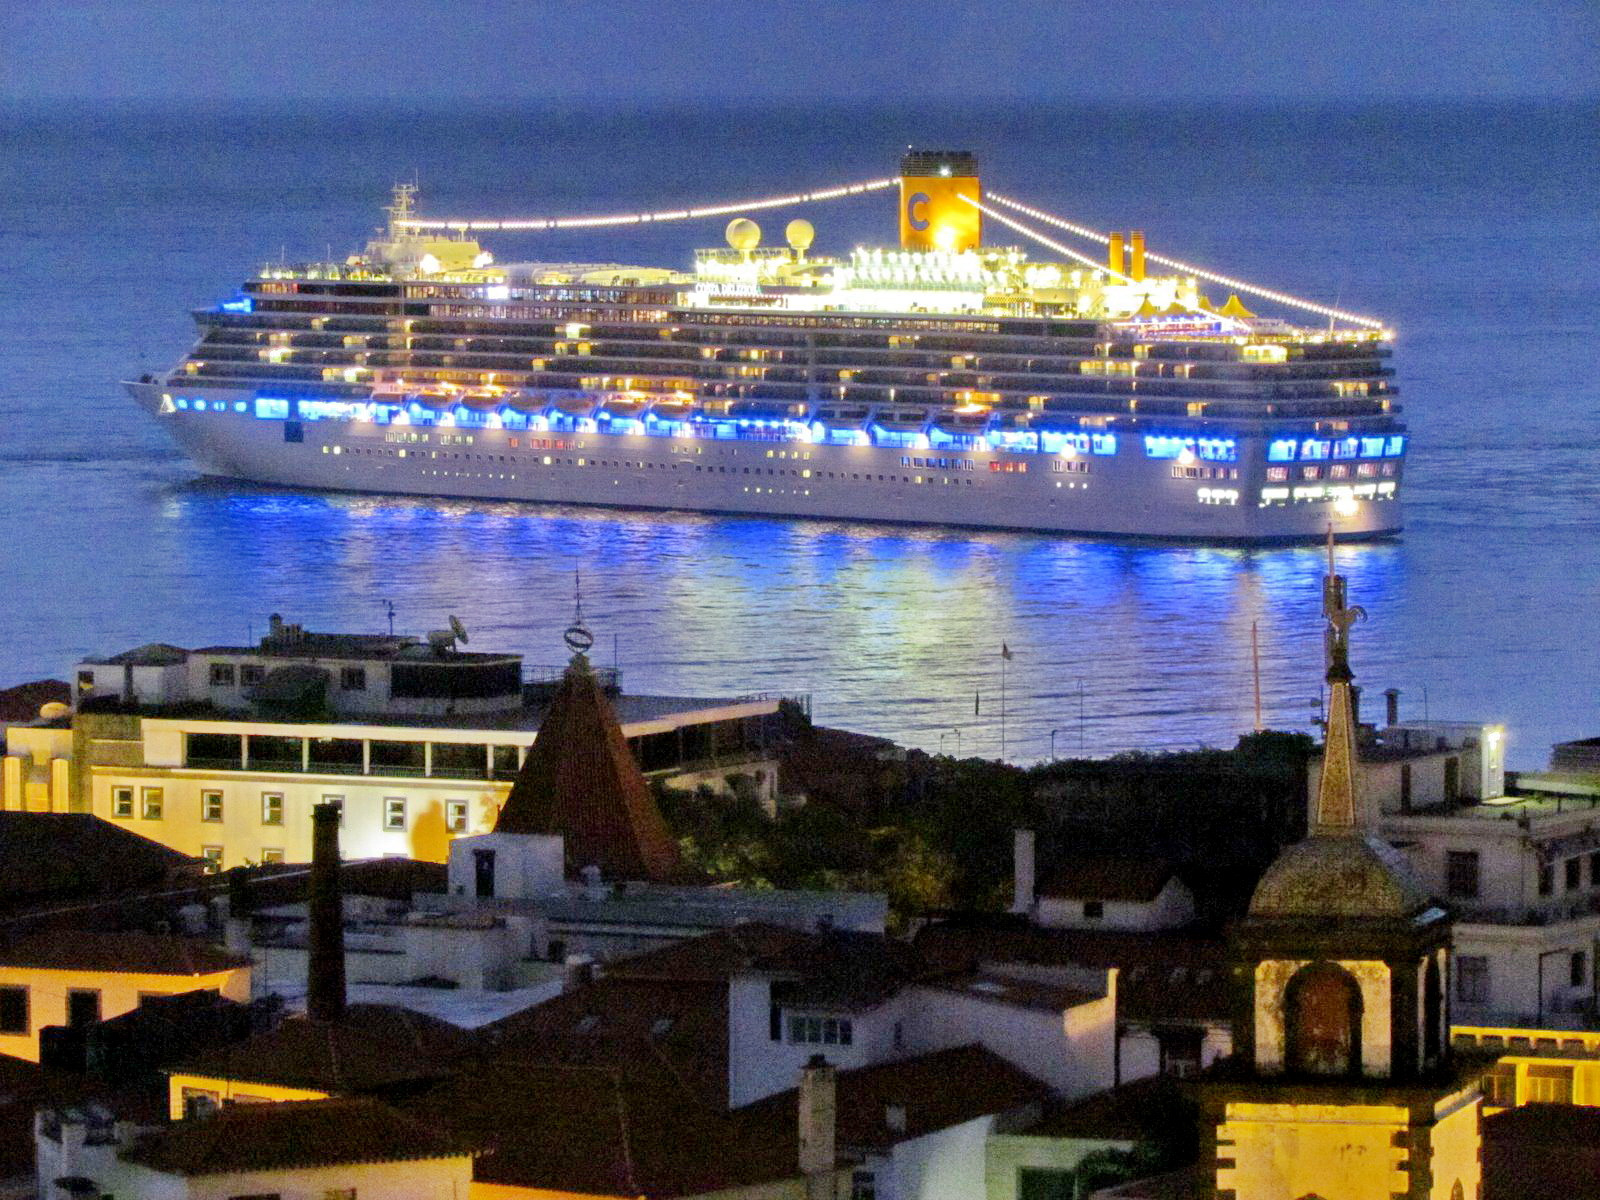 Costa Deliziosa arriving today at Funchal port